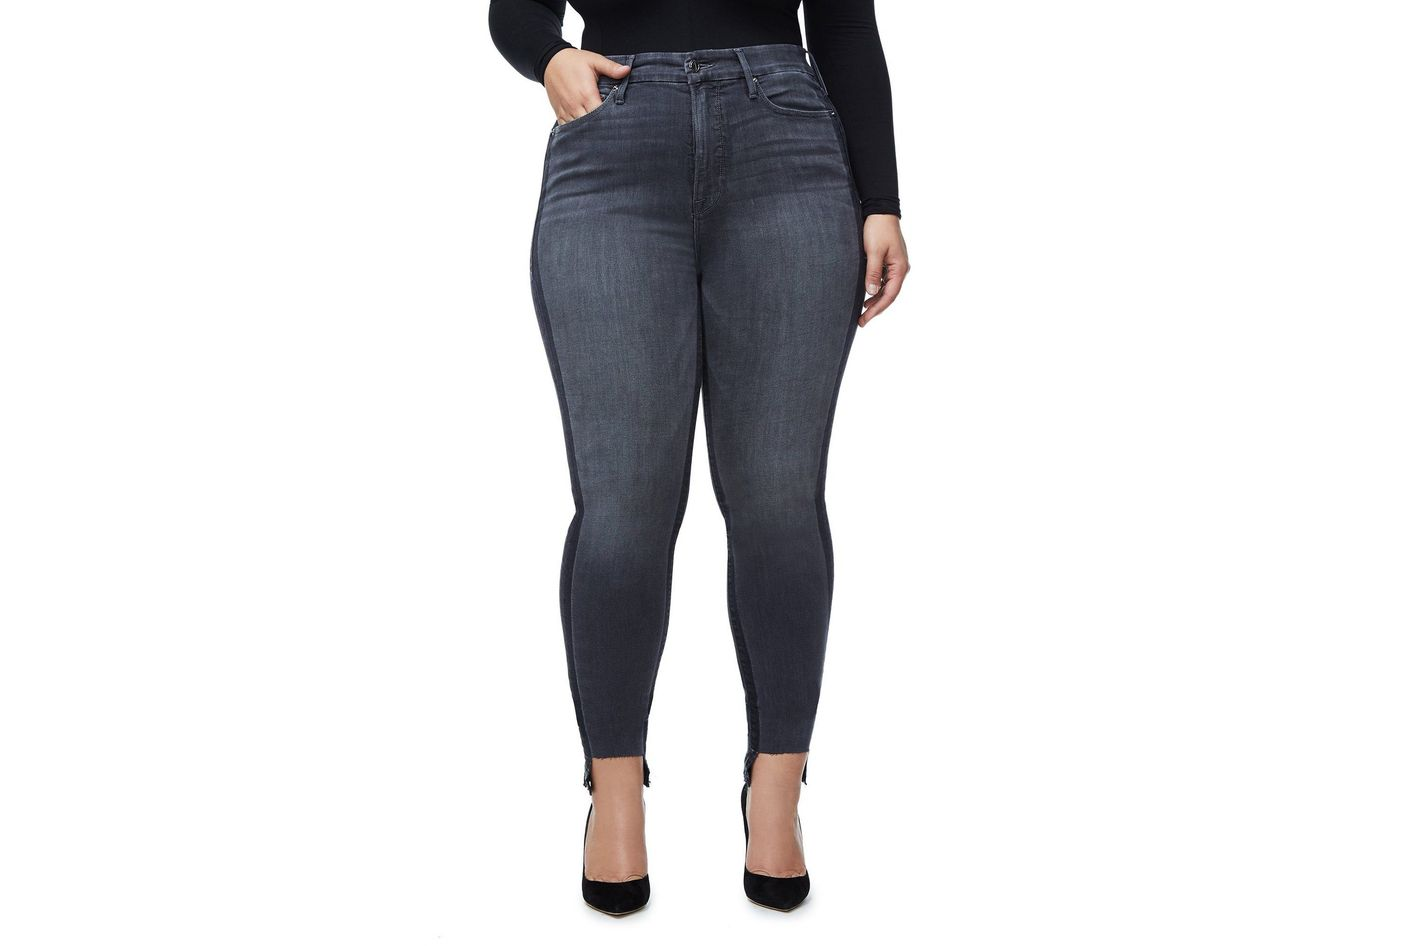 1322bfe6b35 Best plus-size jeans for petite women. Good American Good Legs ...